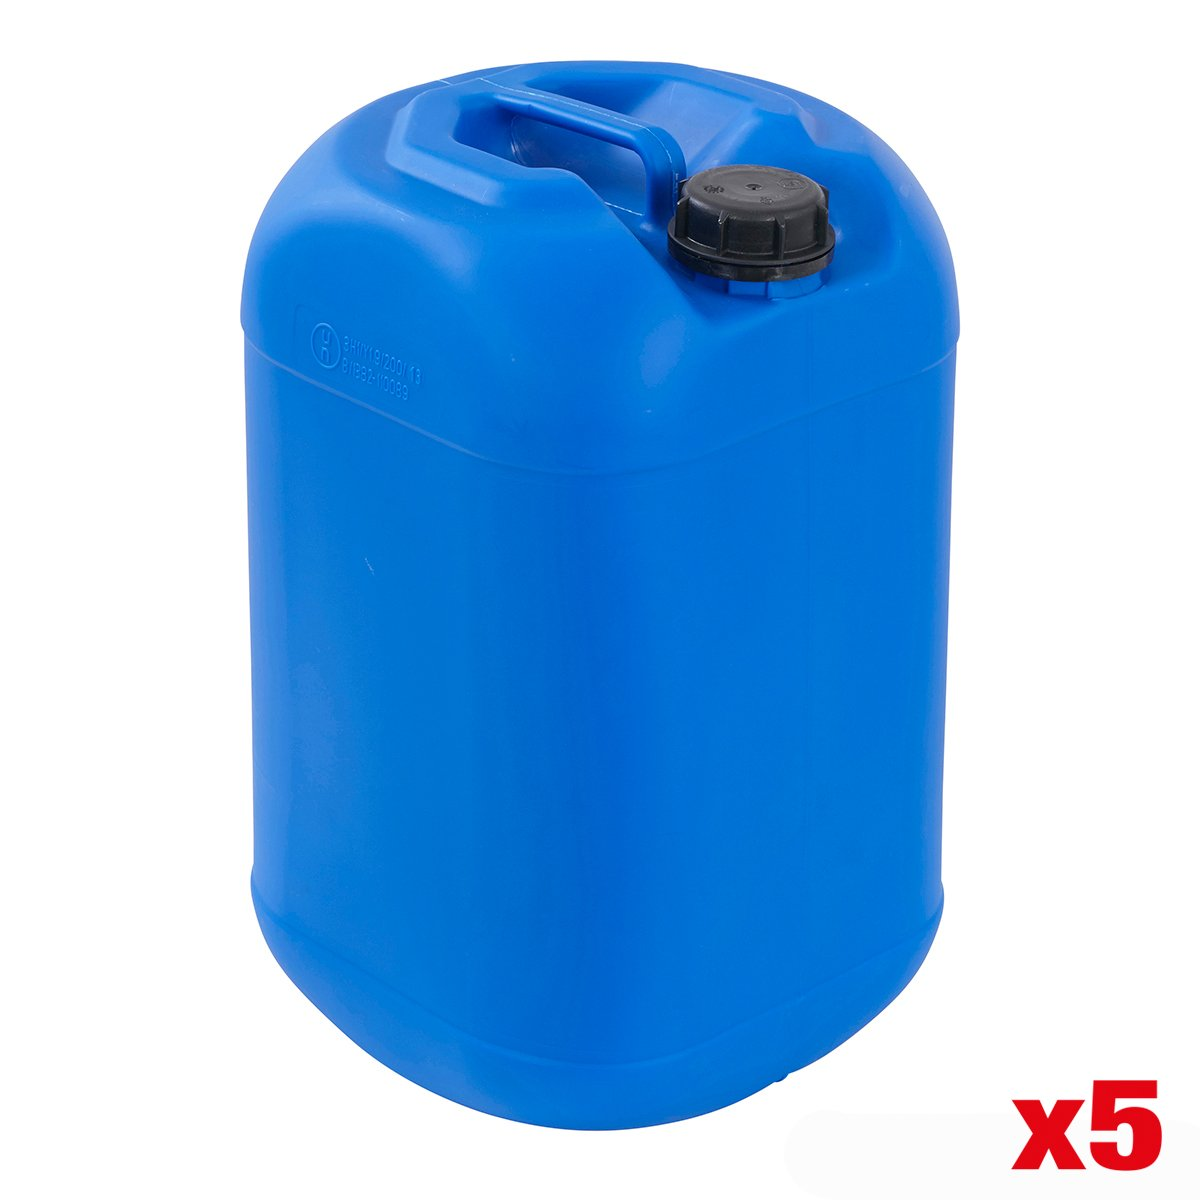 Plastic Stackable 25 Litre JerryCan Drum Storage Fuel Liquids Food Container - Packs Available (Pack Of 5 - Black 25 Litre Jerrycans) BiGDUG